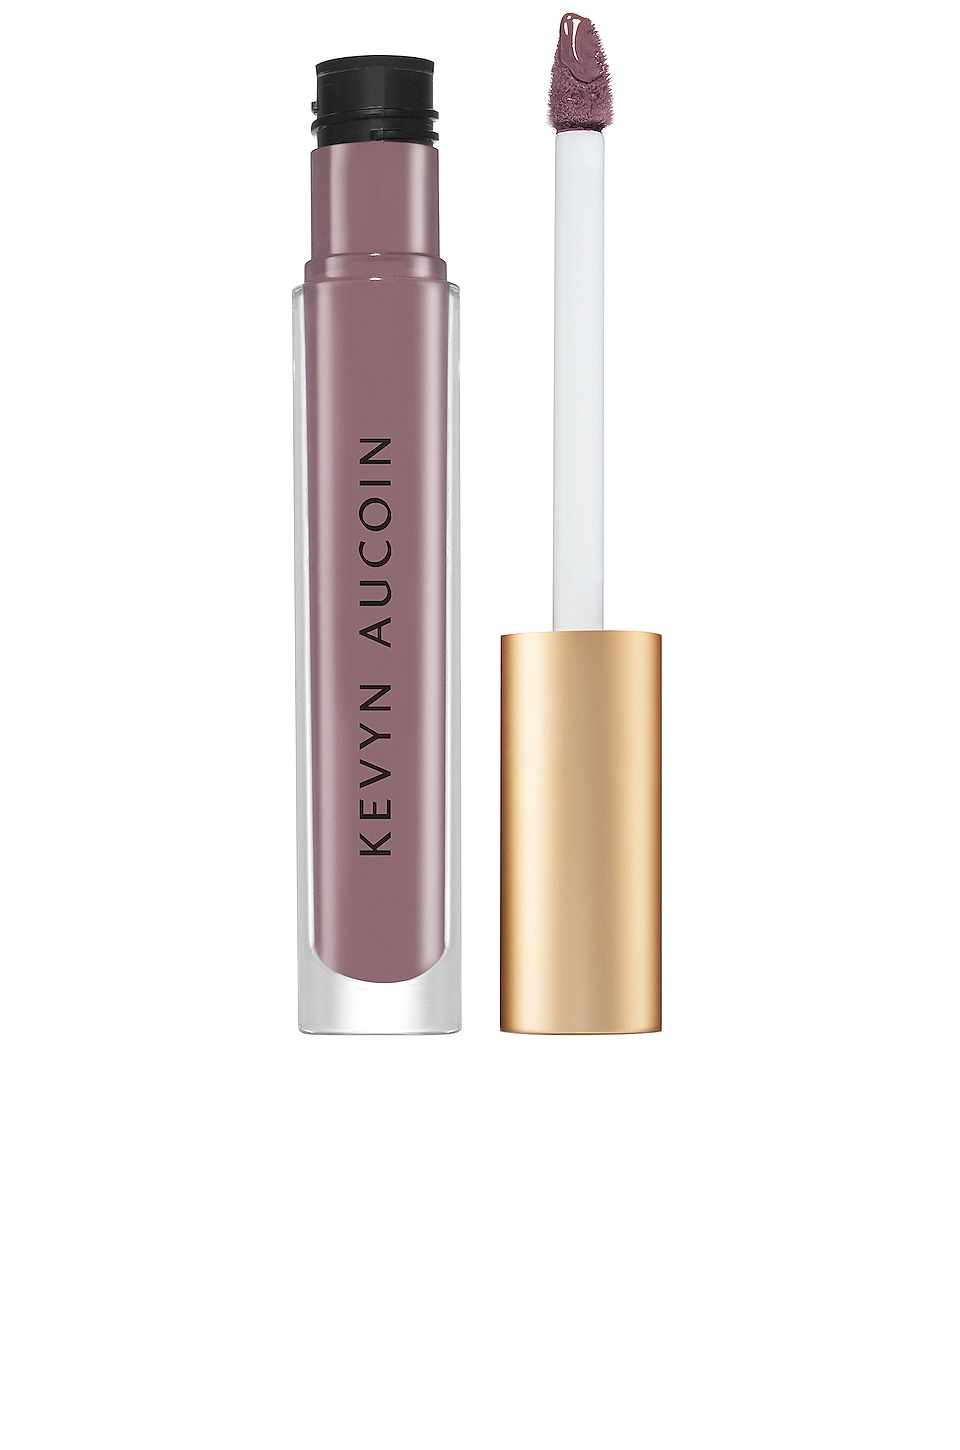 Kevyn Aucoin The Molten Lip Color in Demi